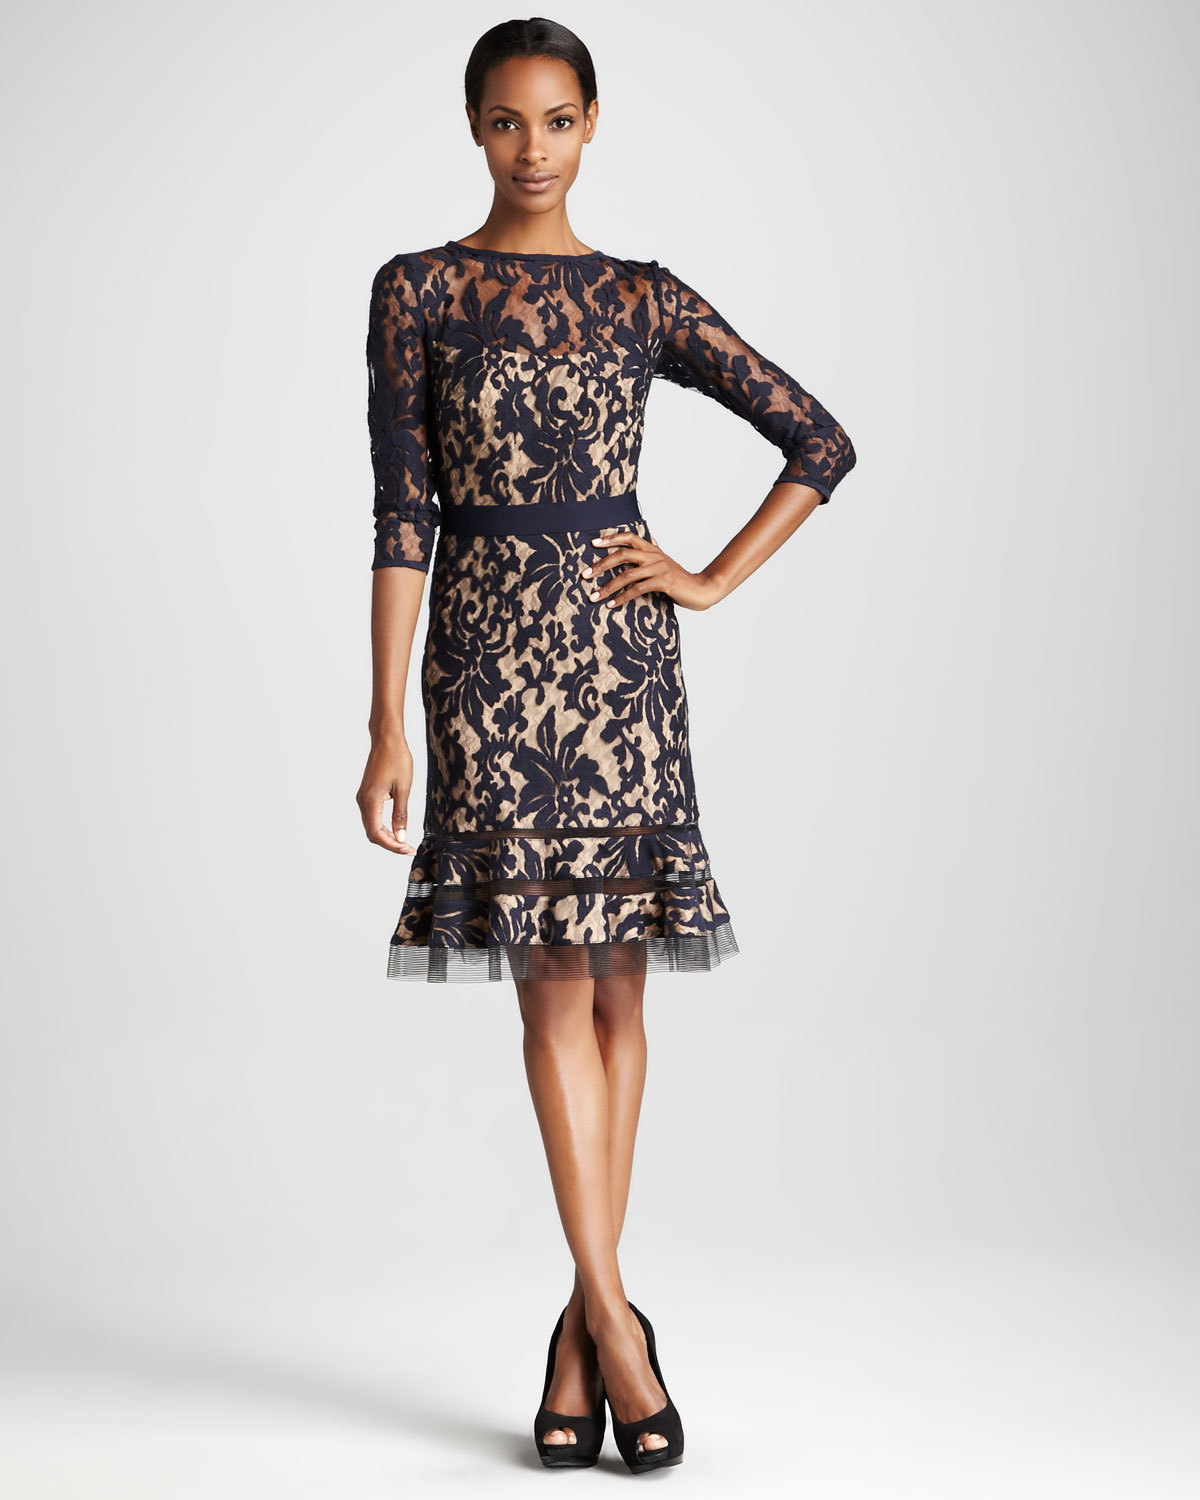 Lyst - Tadashi Shoji Threequarter Sleeve Lace Cocktail Dress in Brown